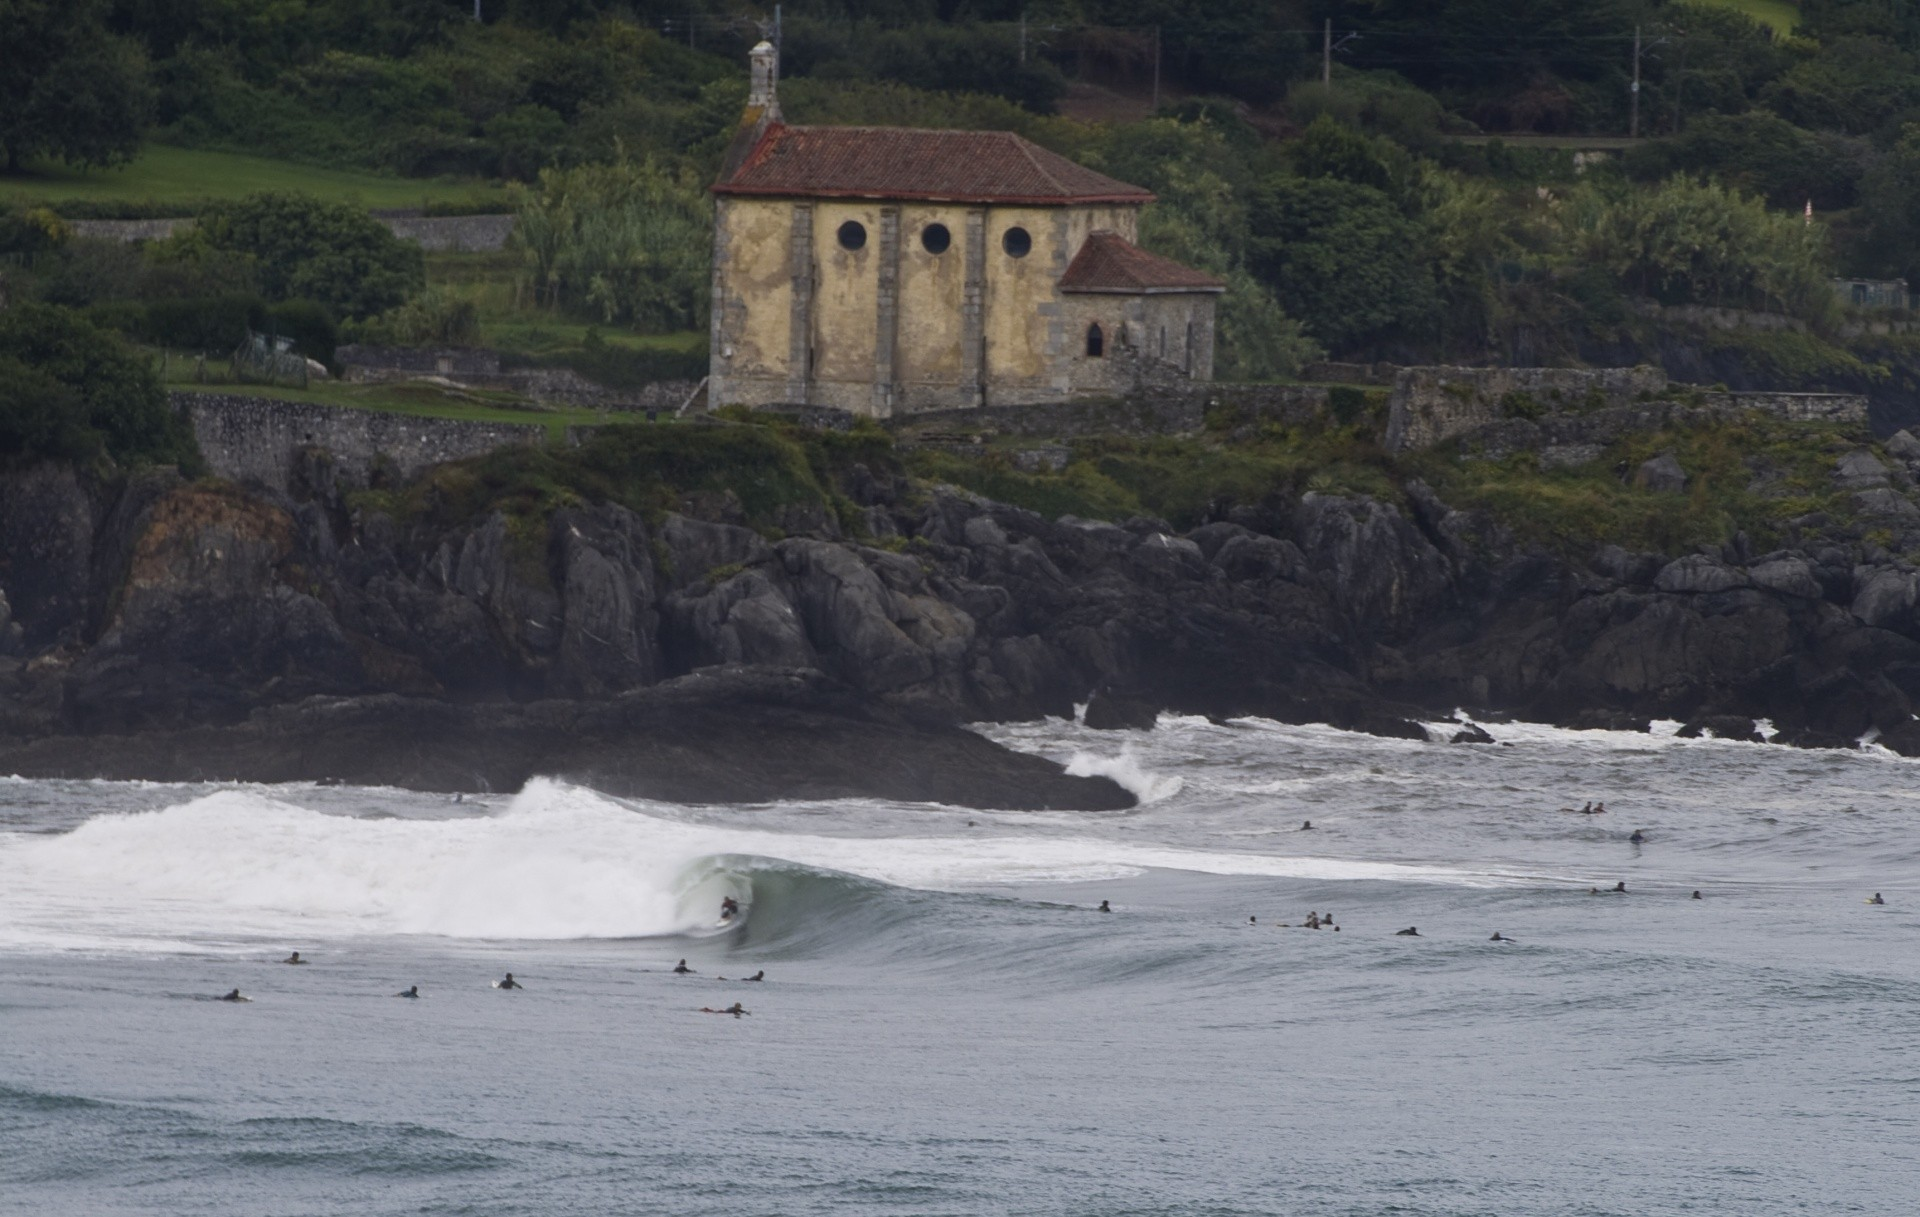 RAIKERs's photo of Mundaka